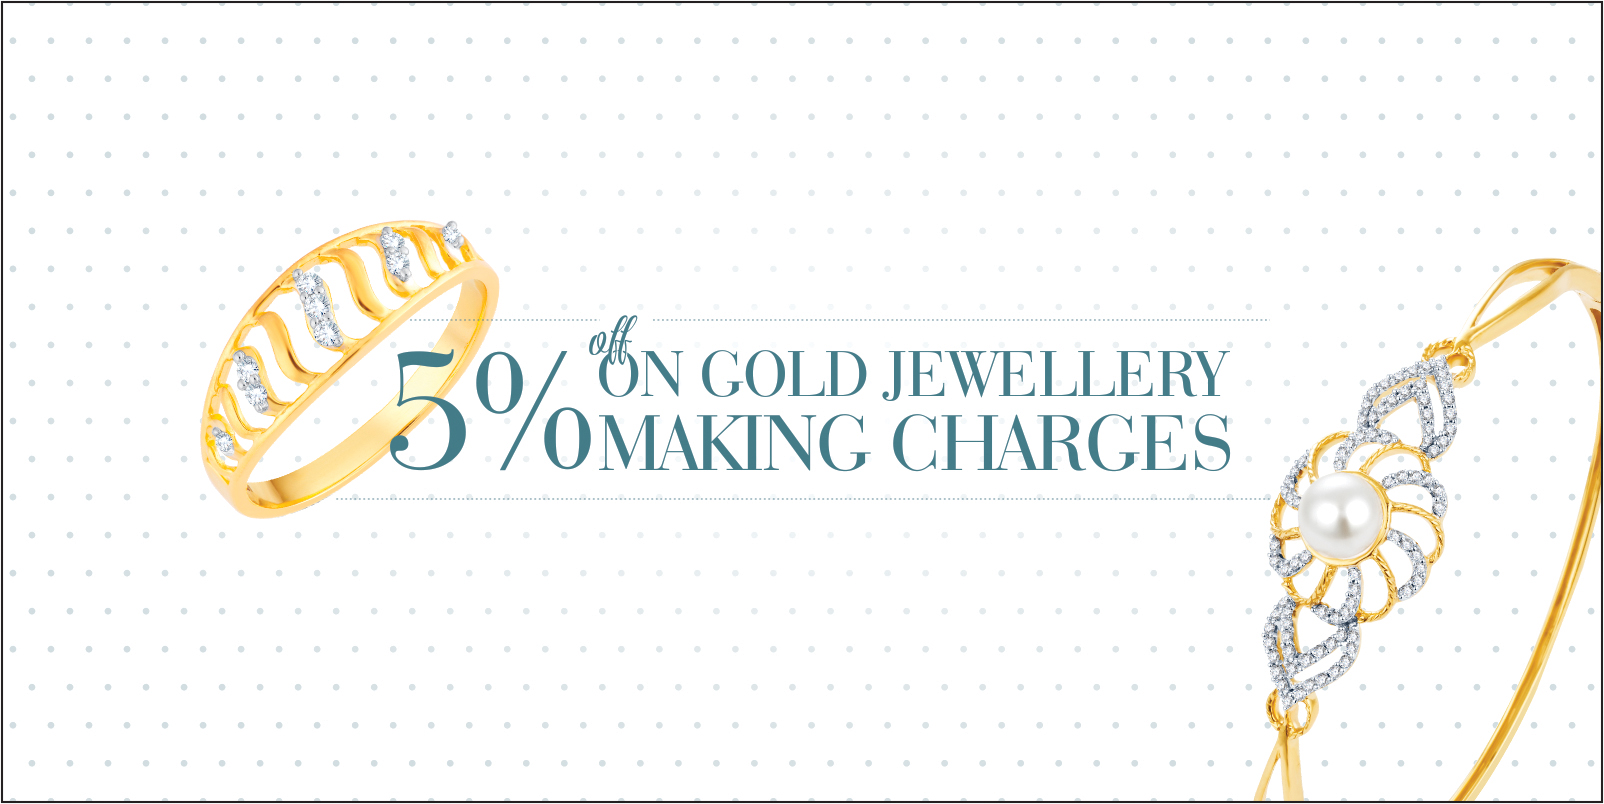 5% off on Gold Jewellery Making Charges.